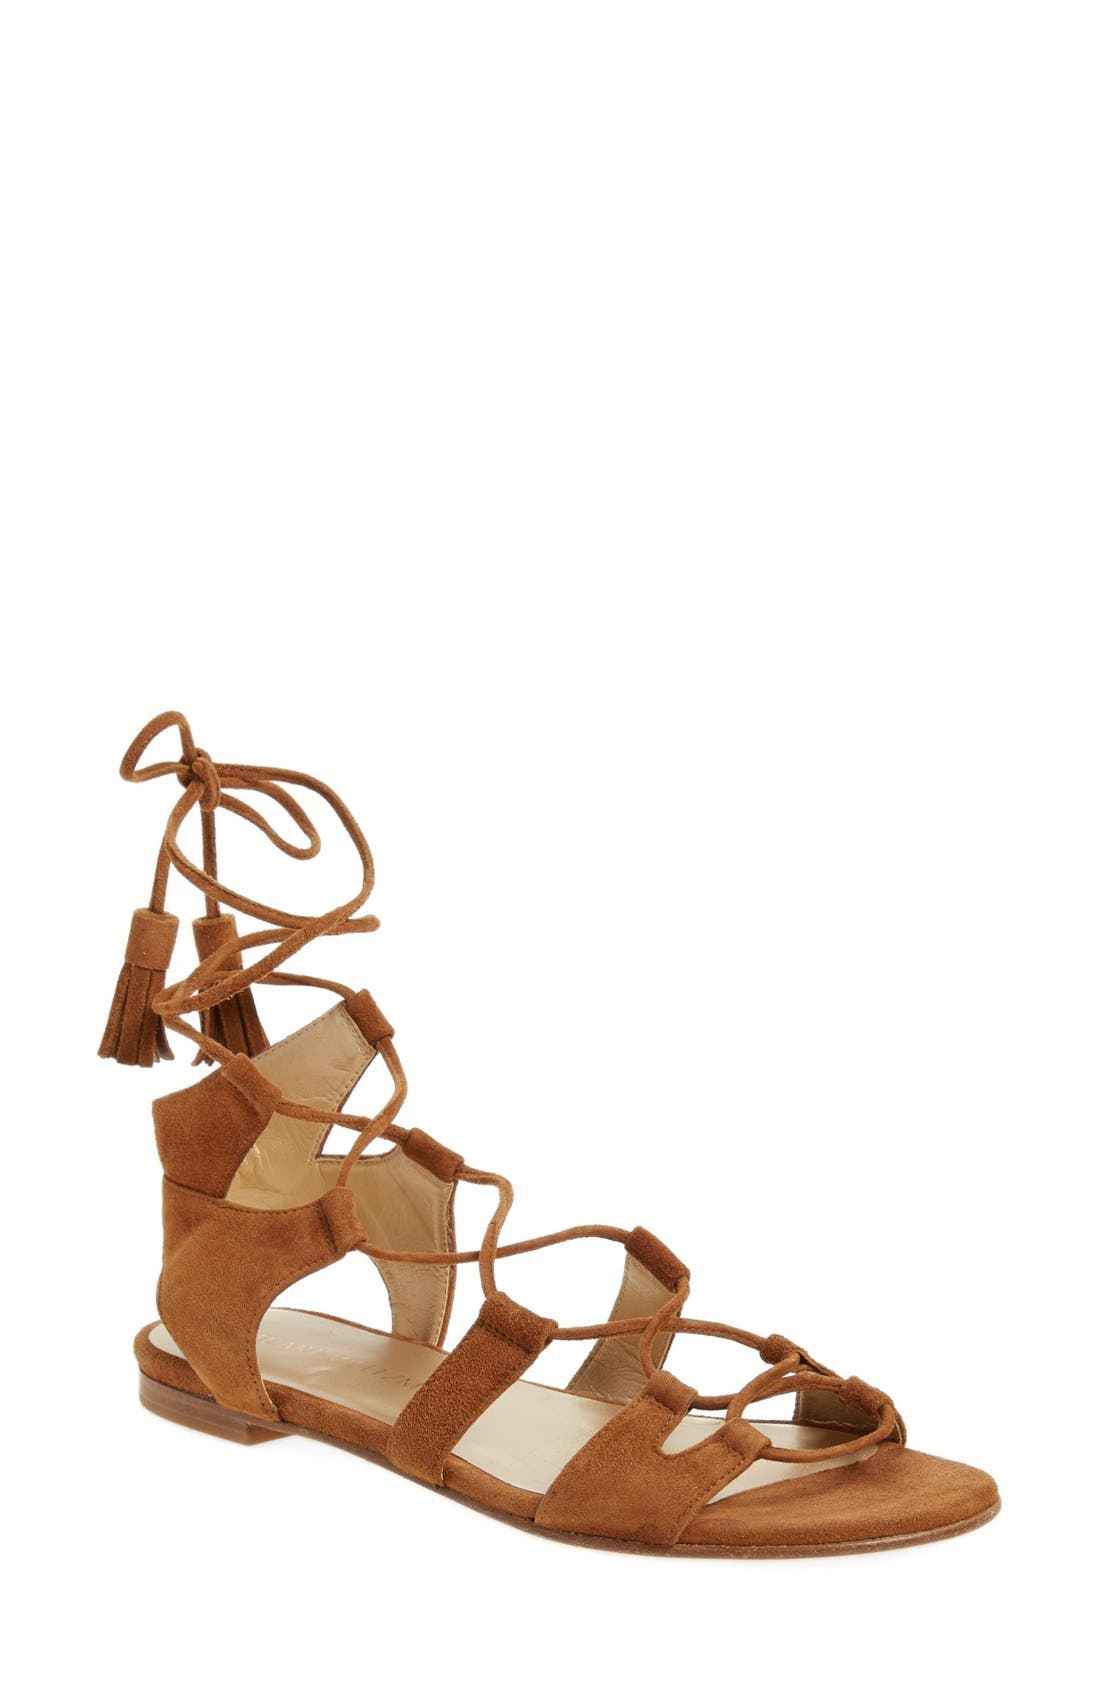 Alternate Image 1 Selected - Stuart Weitzman 'Romanflat' Ghillie Sandal (Women)